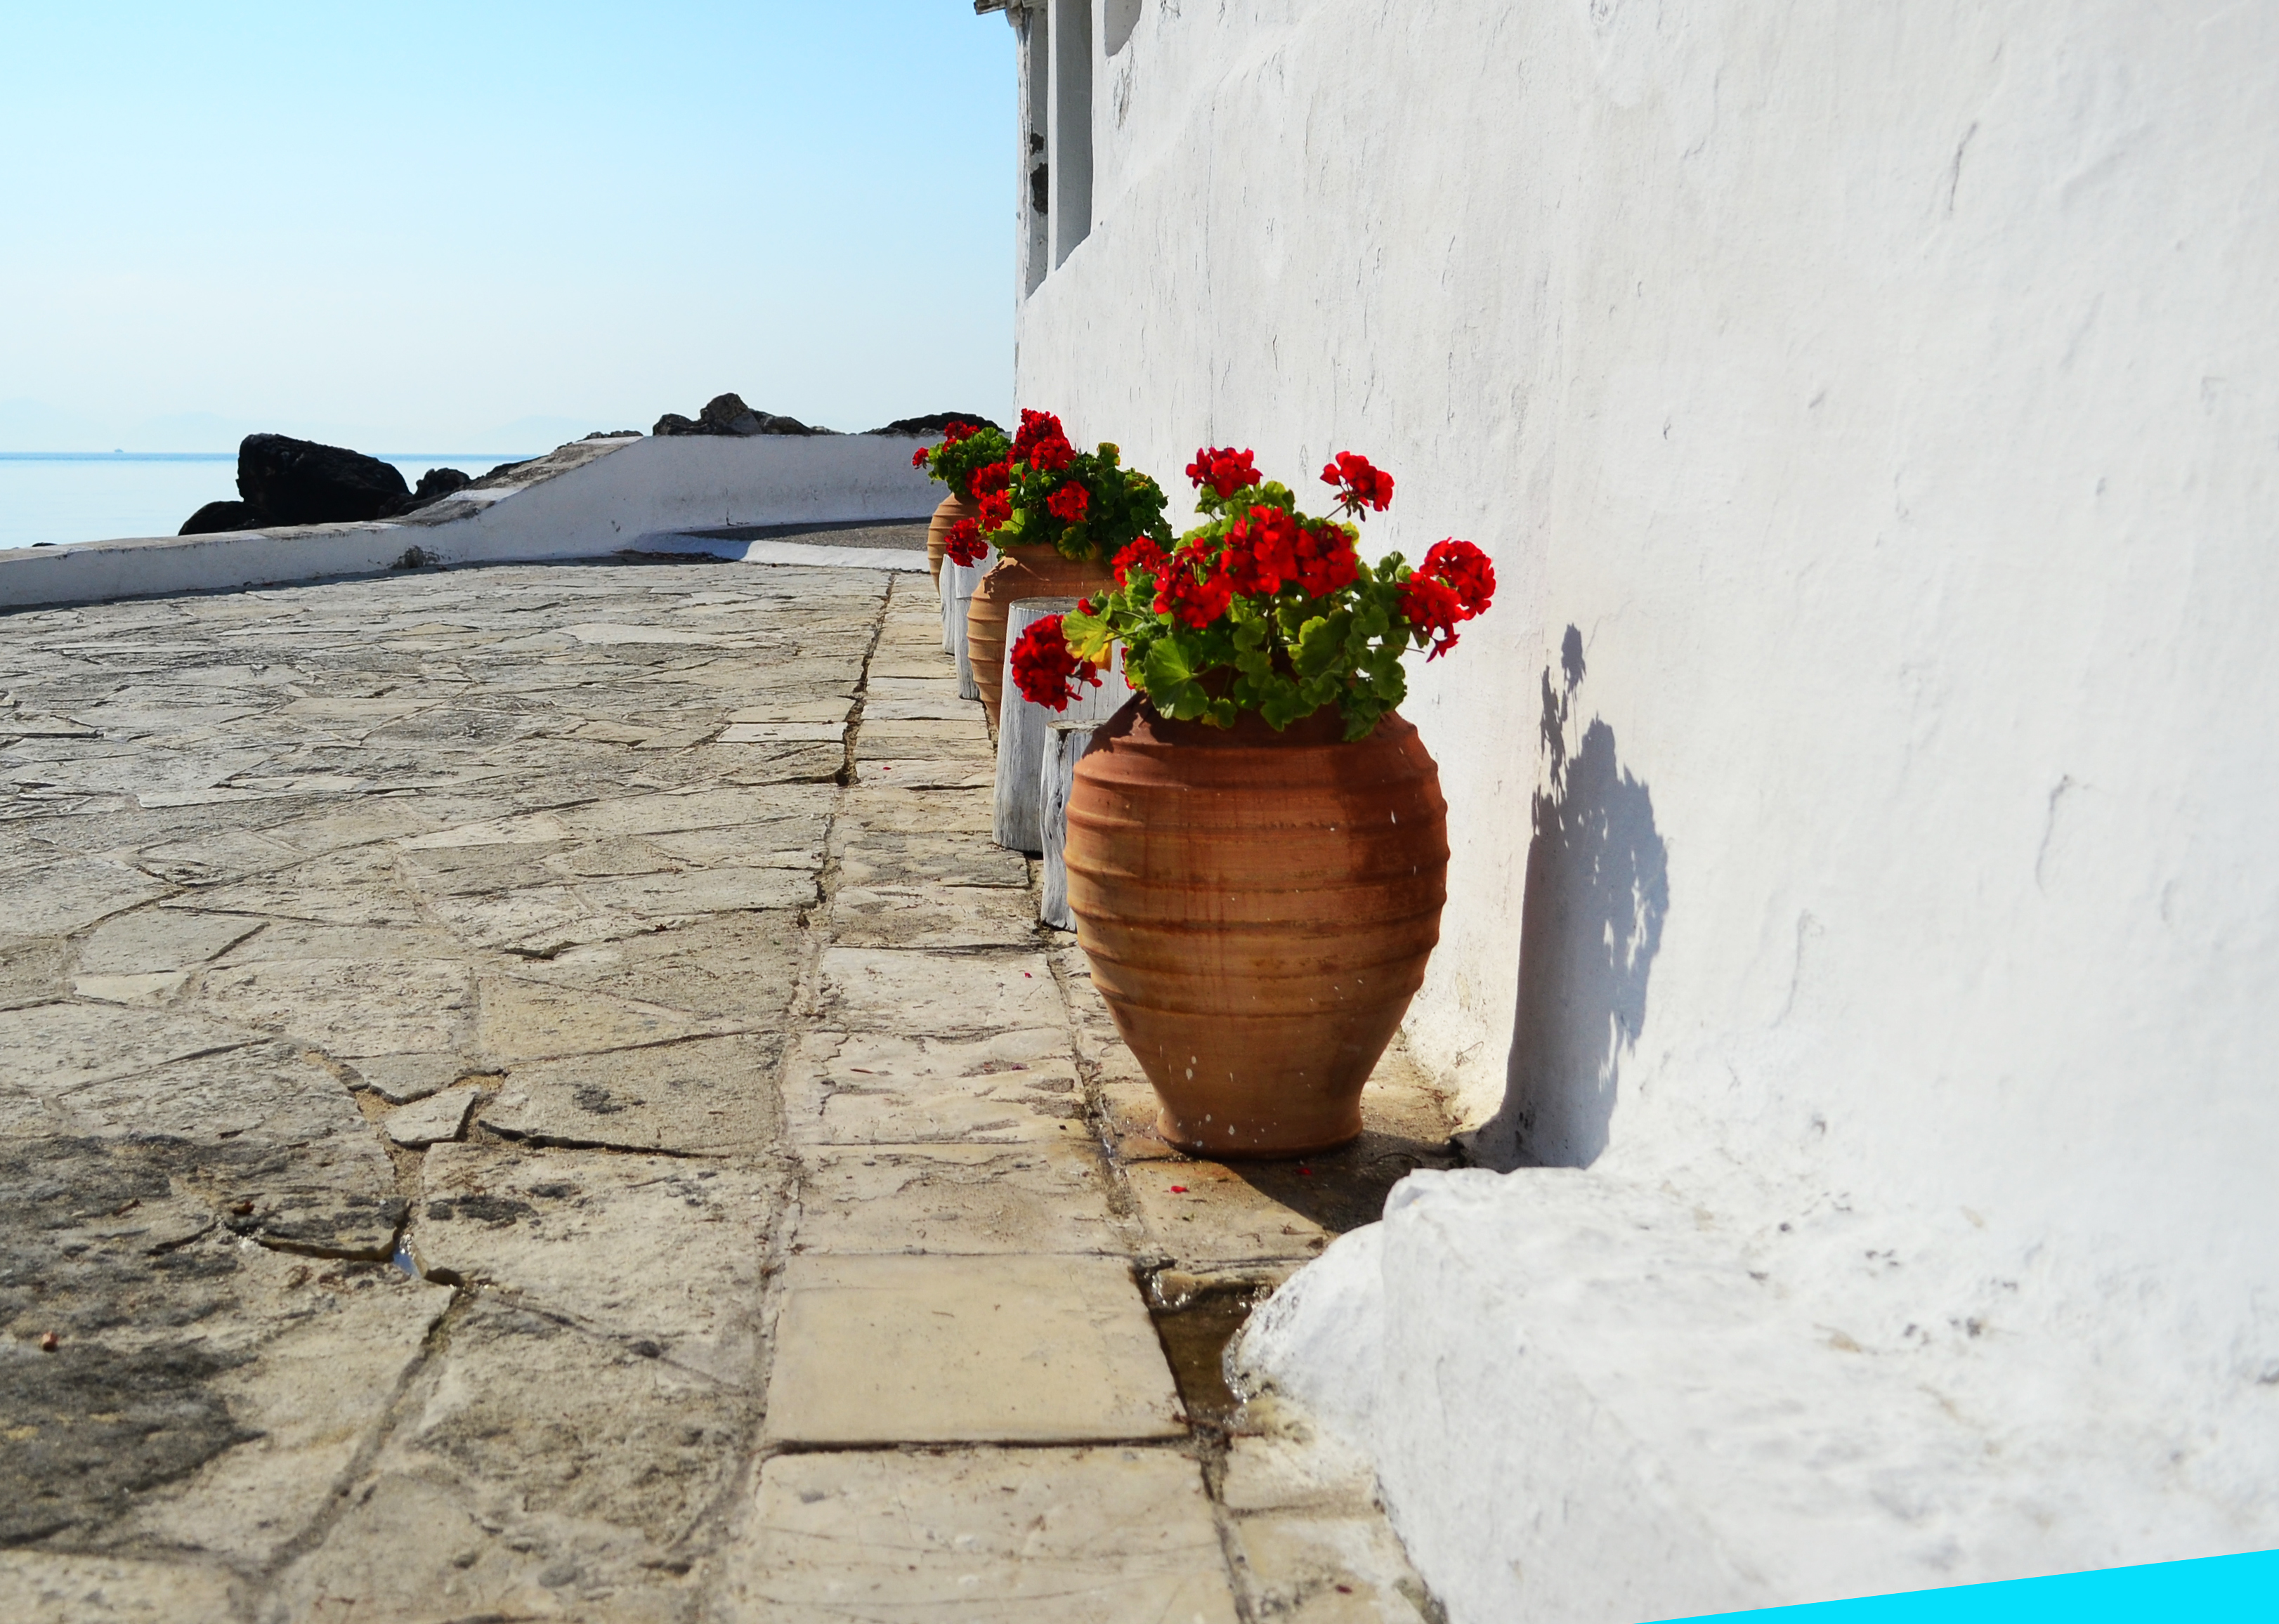 Flower pot, Flower, Outside, Pavement, Pot, HQ Photo